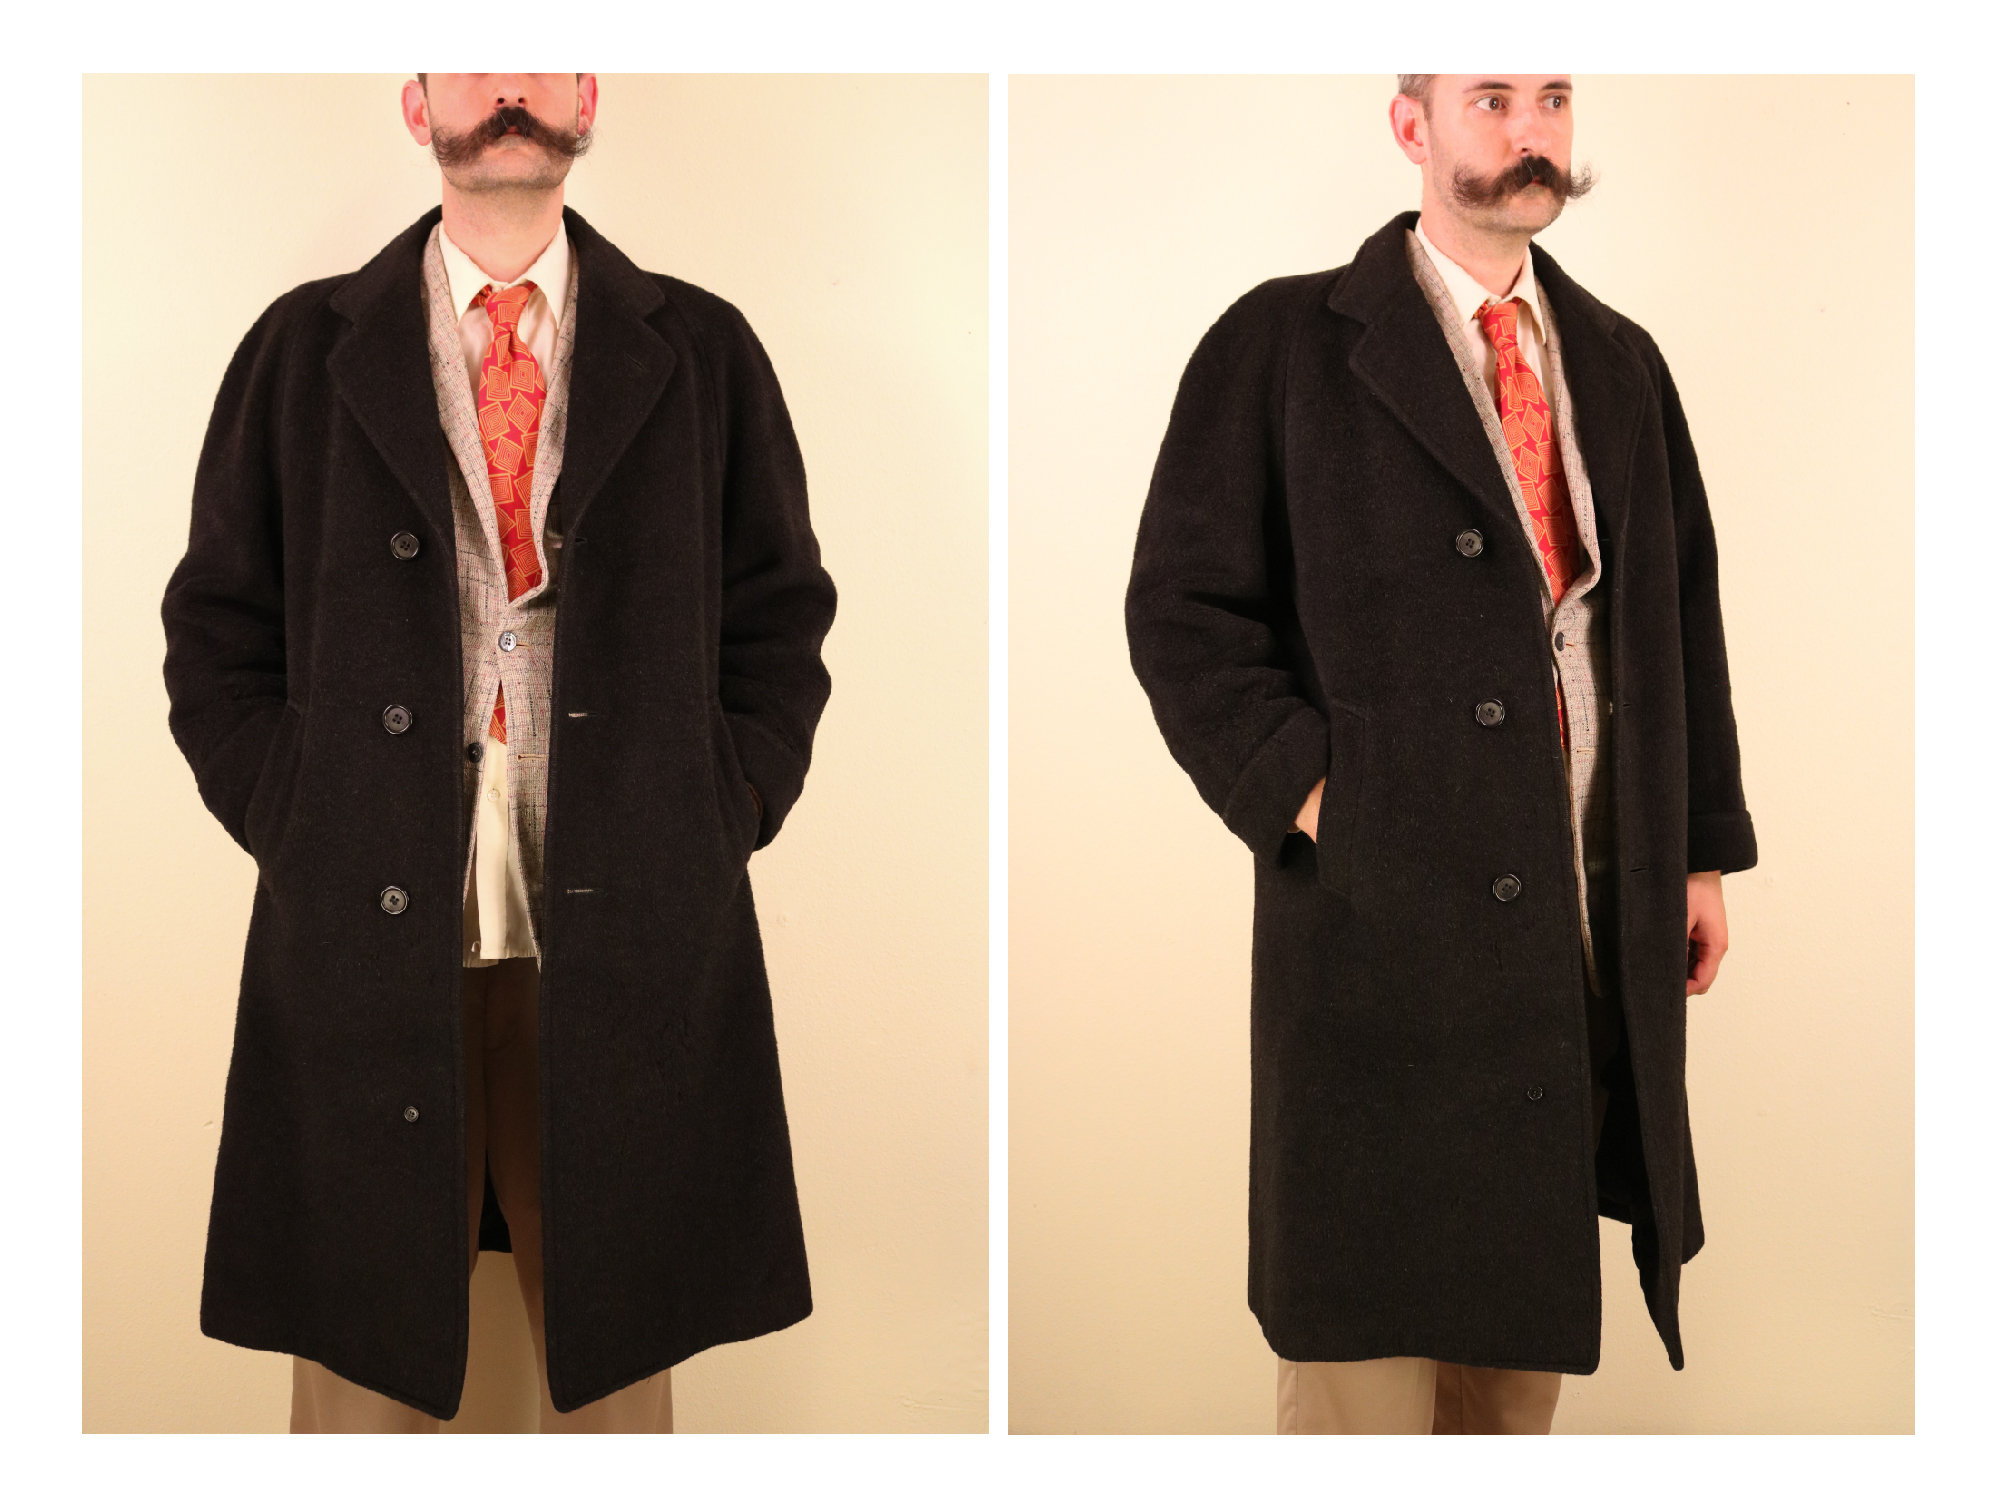 New 1930s Mens Fashion Ties 1930s Heavy Wool Mens Overcoat With Convertible Pockets Halle Bros Co Mens Menswear Vintage Big  Tall War Era Wwii Rare $0.00 AT vintagedancer.com